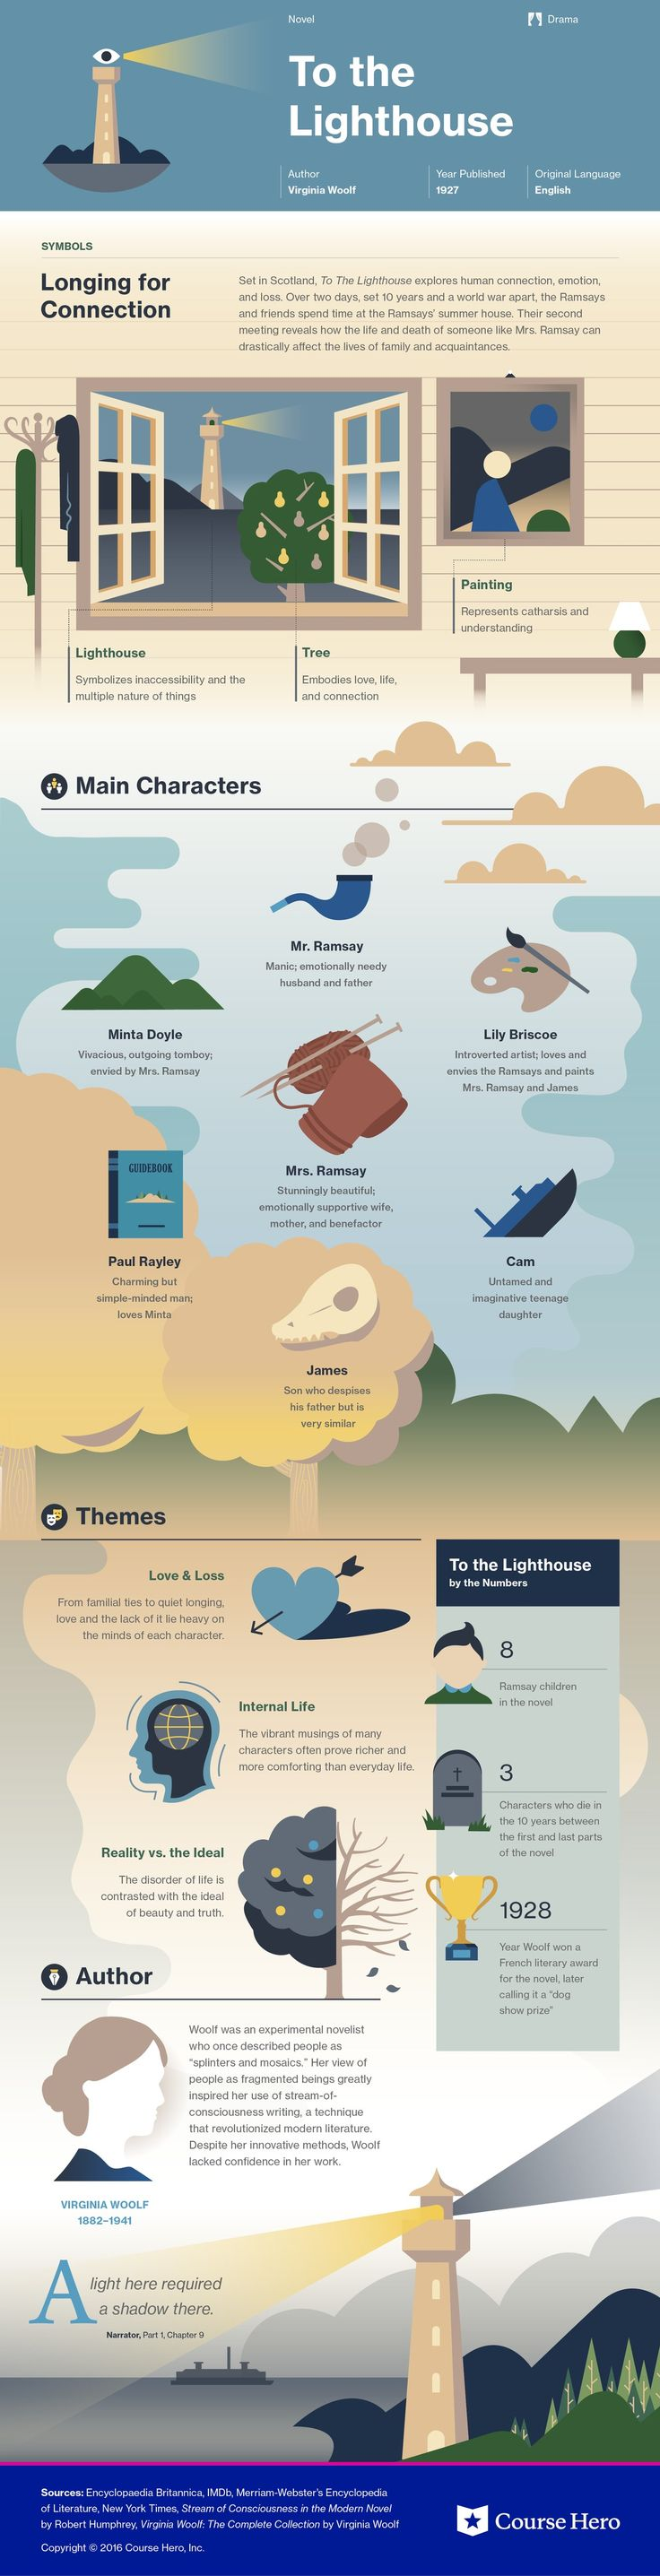 To the Lighthouse infographic